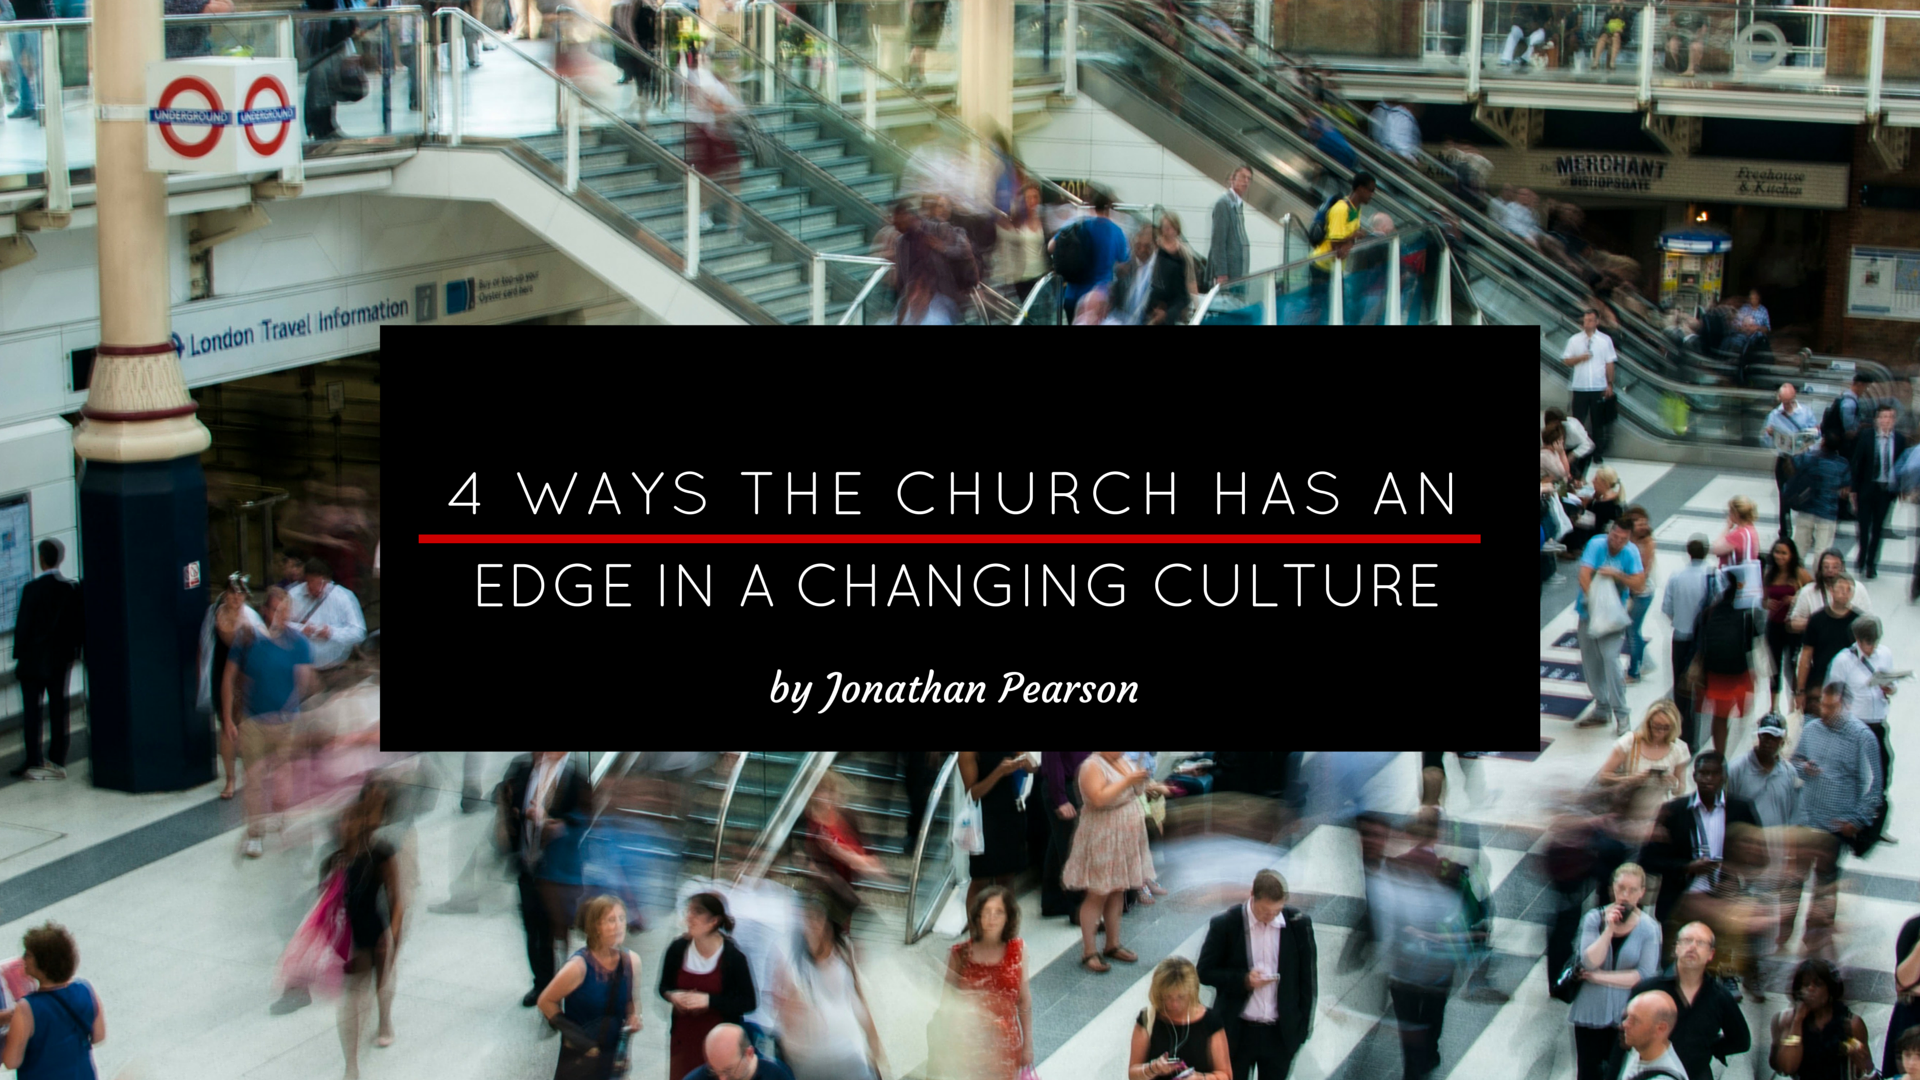 4 Ways the Church Has an Edge in a Changing Culture - by Jonathan Pearson